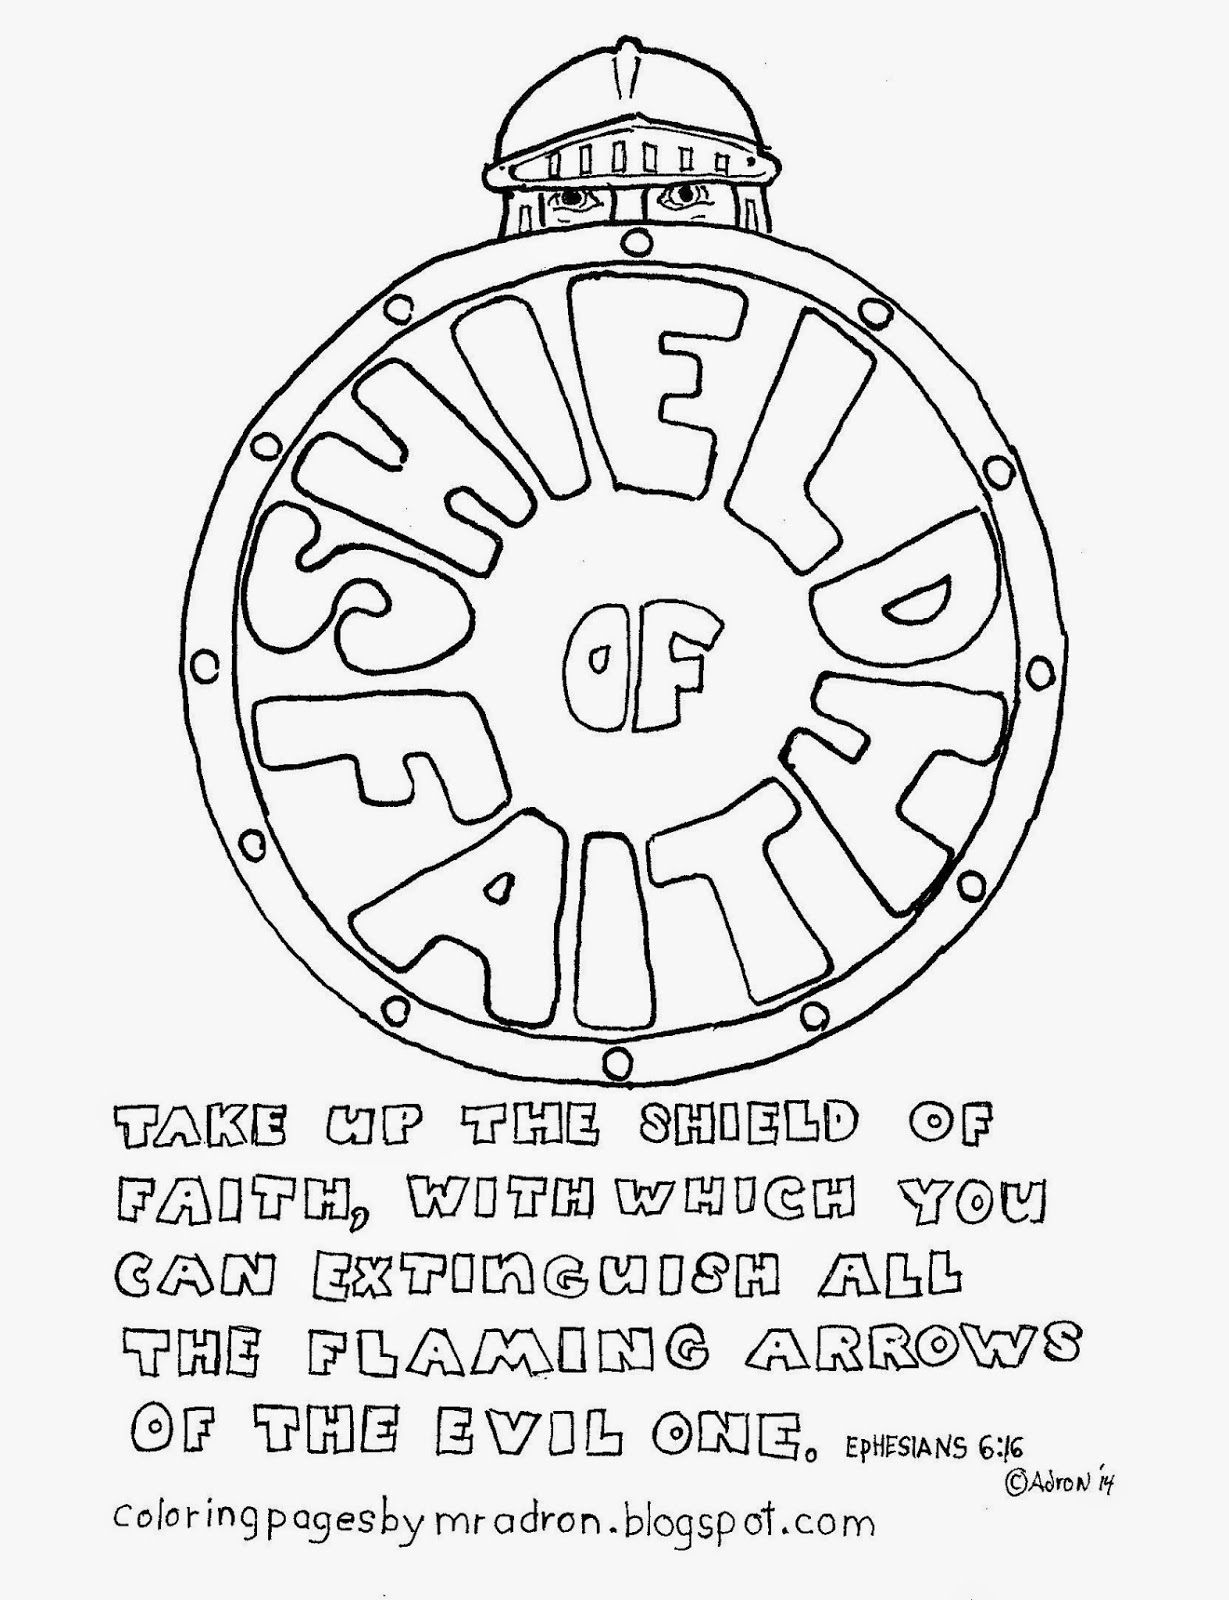 Coloring Pages For Kids By Mr Adron The Shield Of Faith